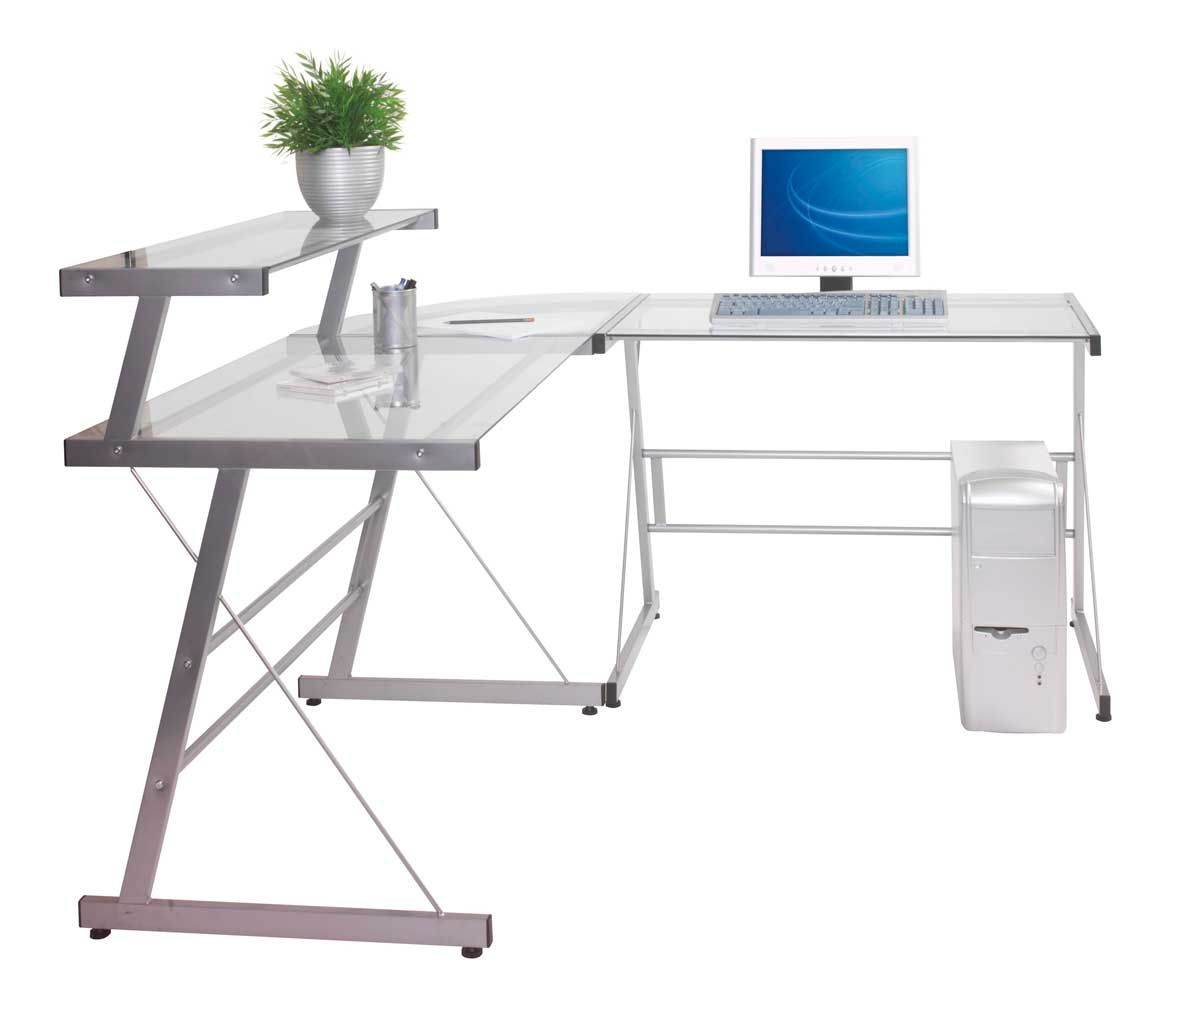 Idea Use a long skinny table to set up in a corner with my